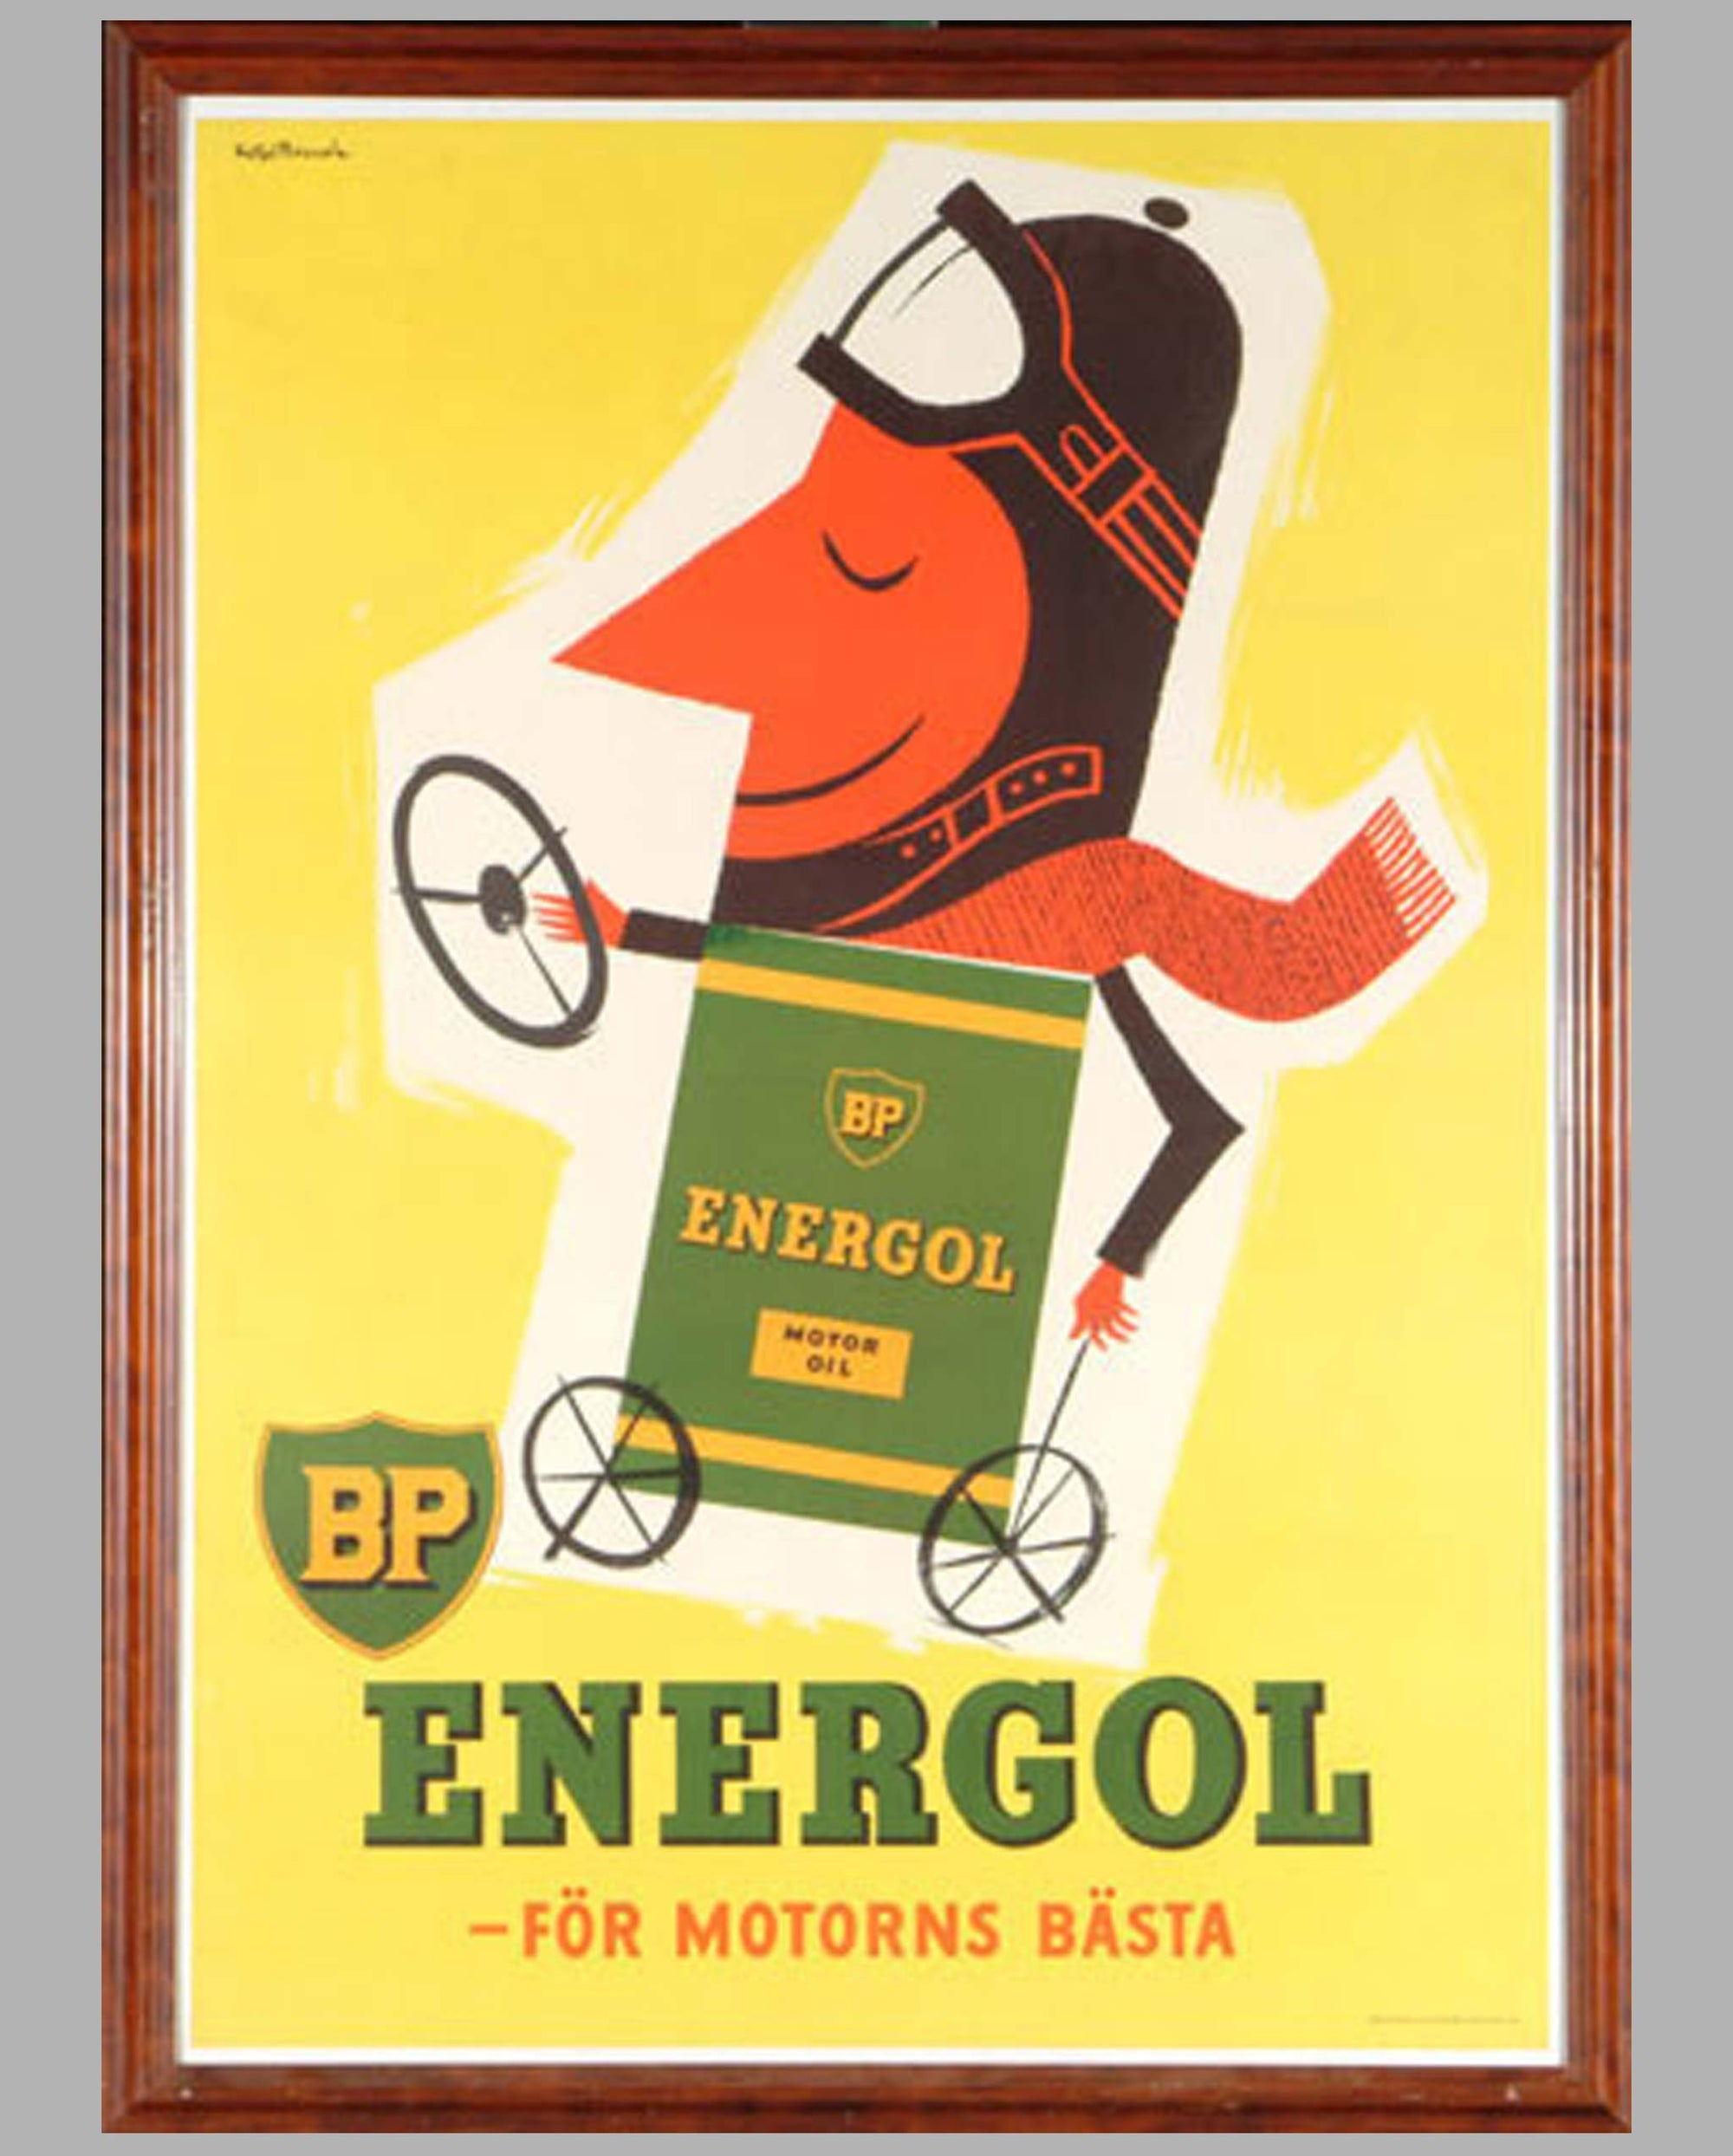 1953 BP Energol advertising poster